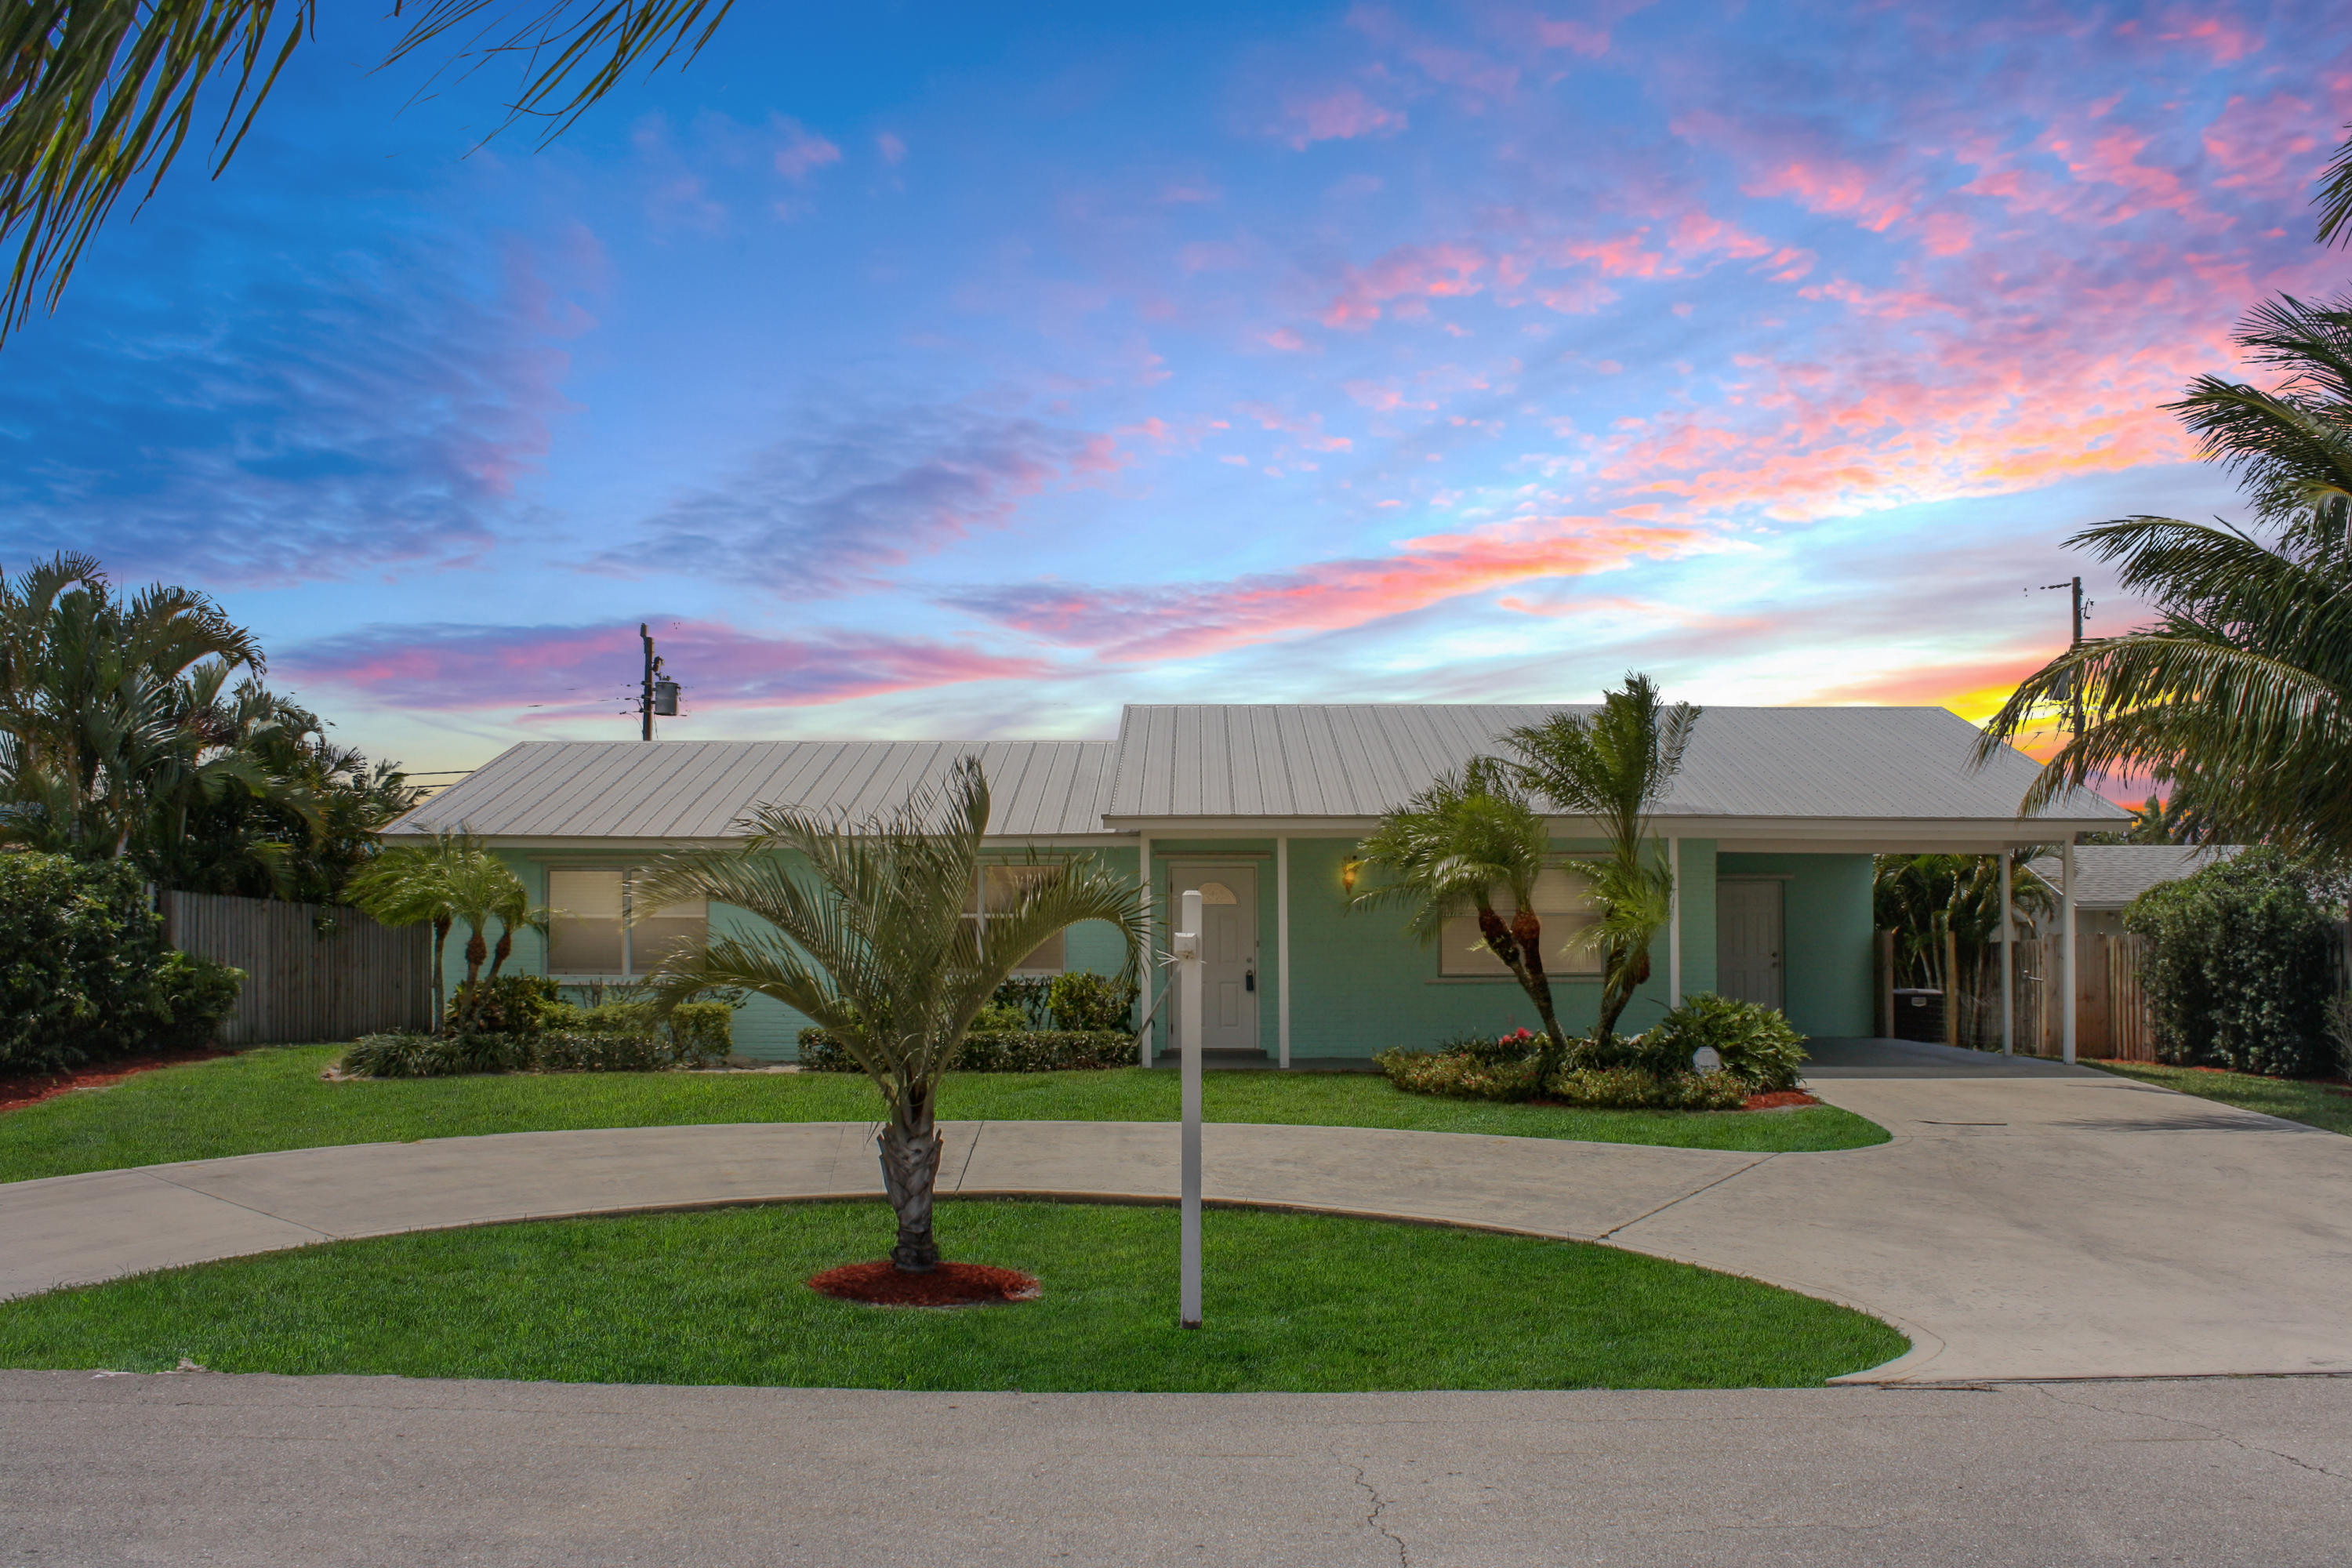 New Home for sale at 371 Mars Avenue in Tequesta